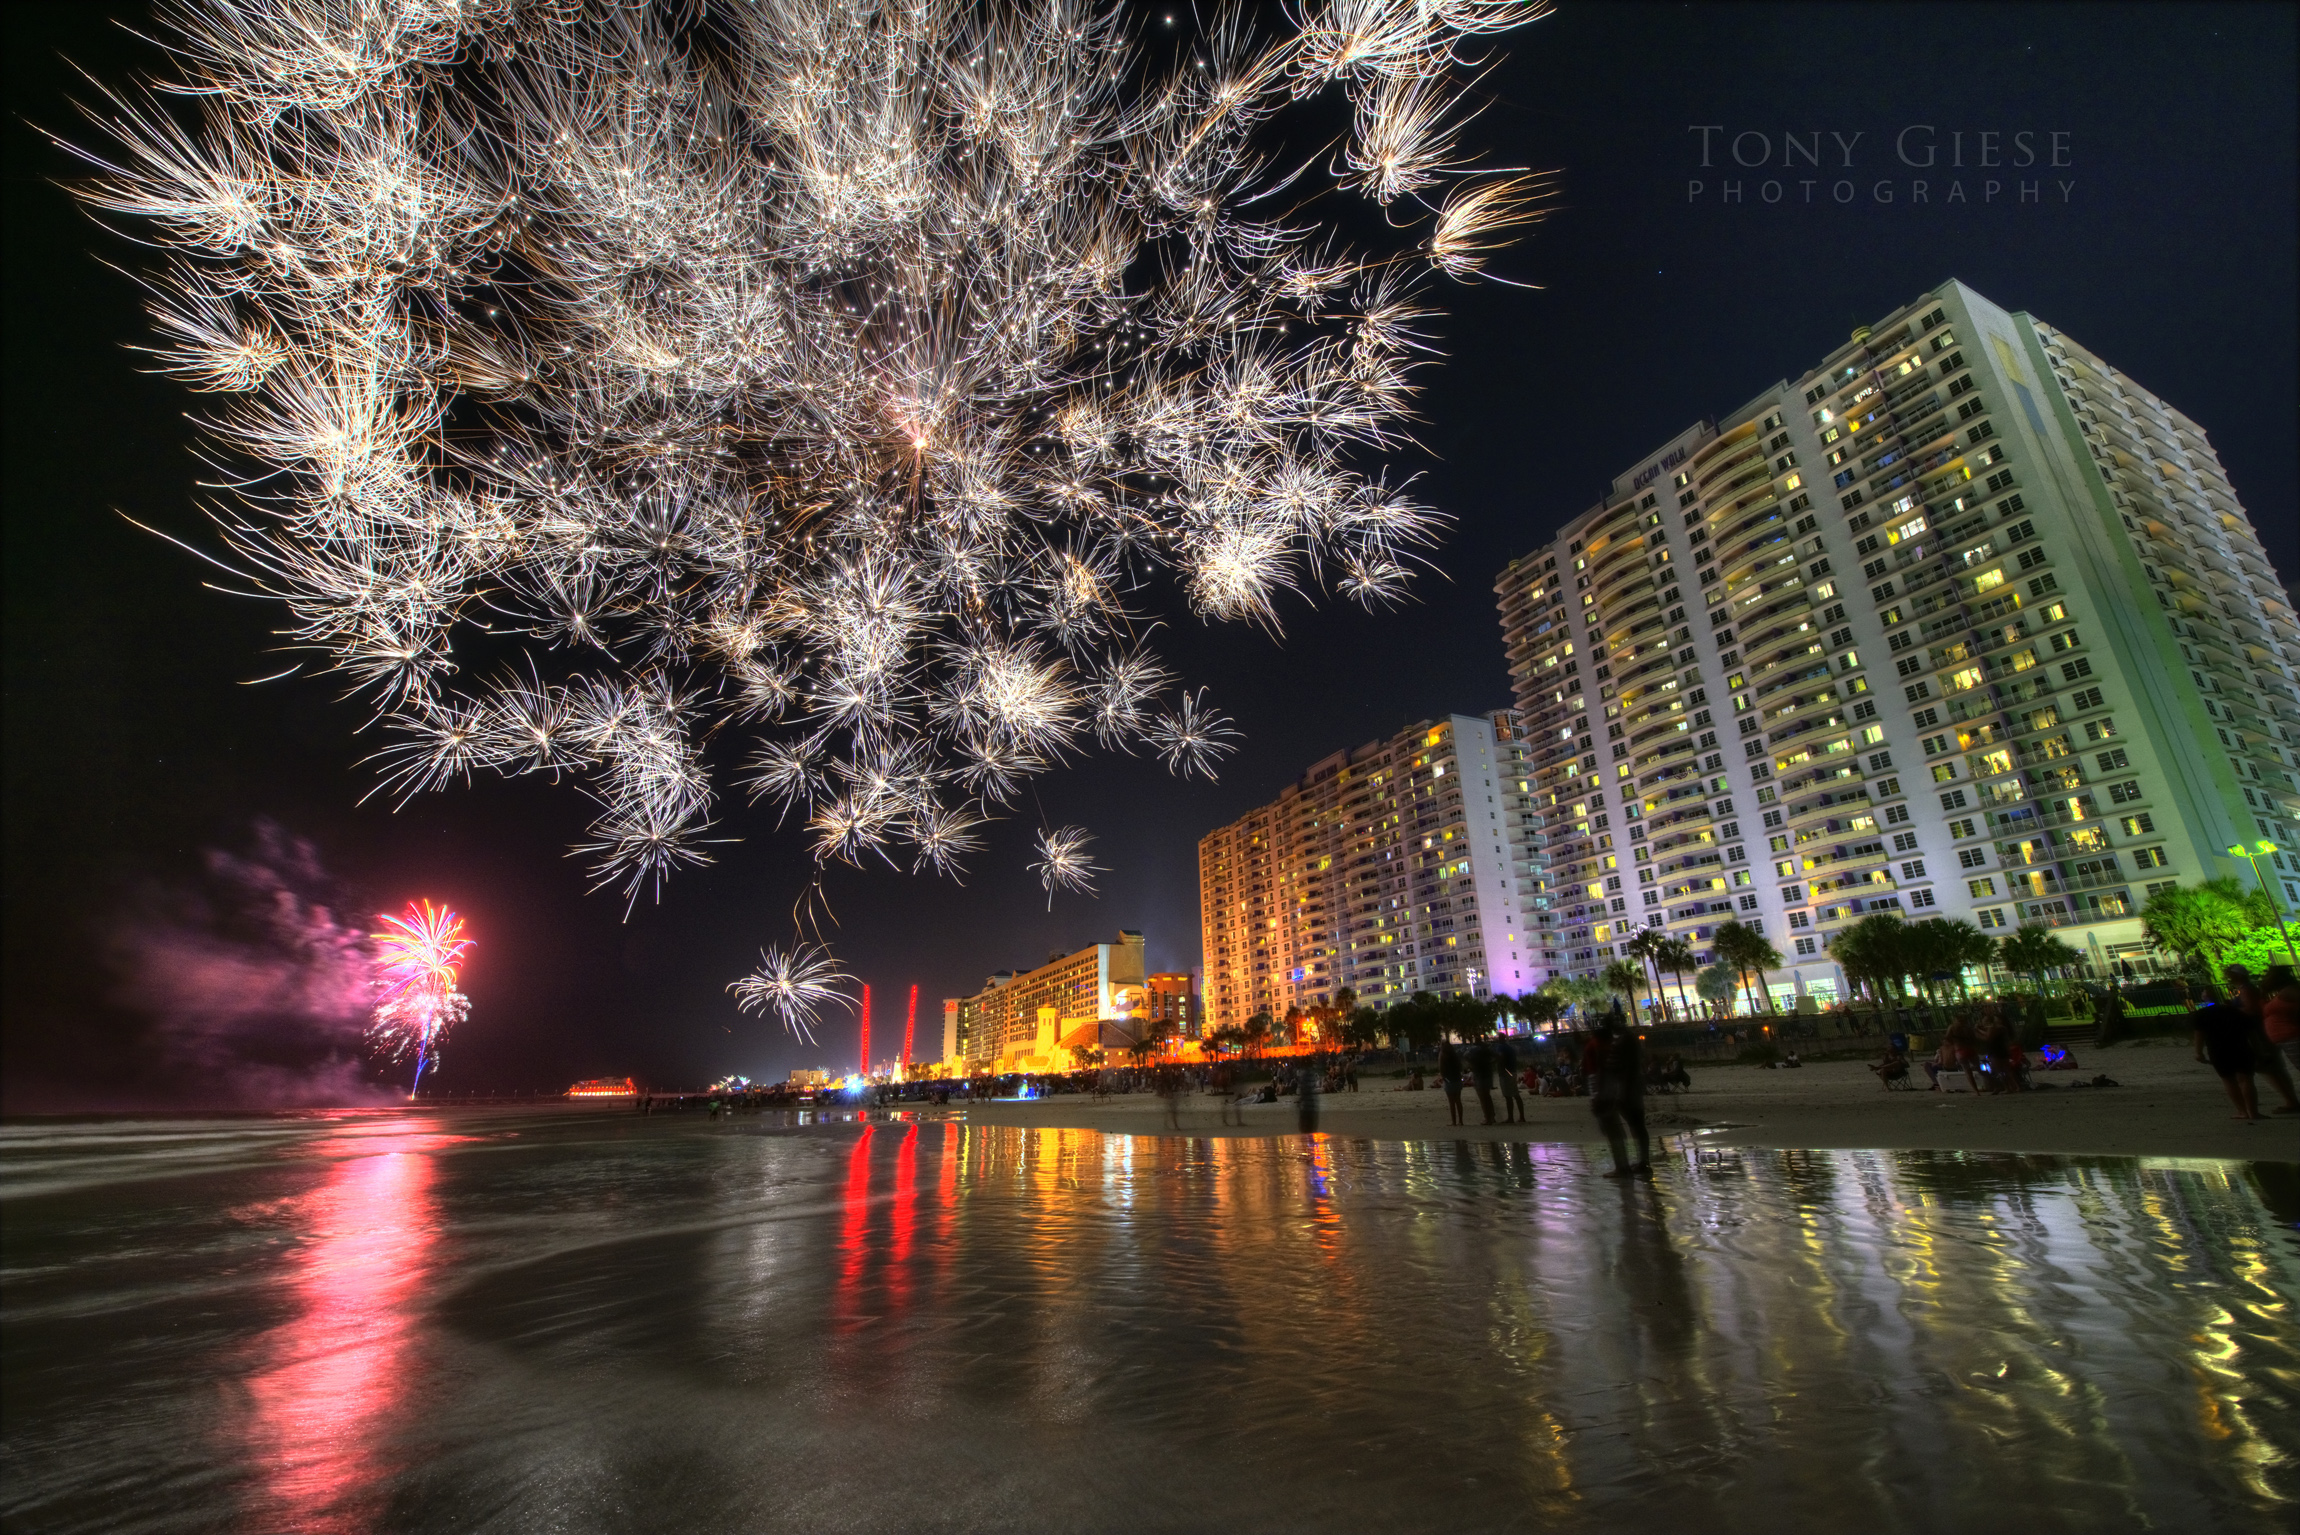 The night sky full of fireworks near Wyndham Ocean Walk resort on Daytona Beach.